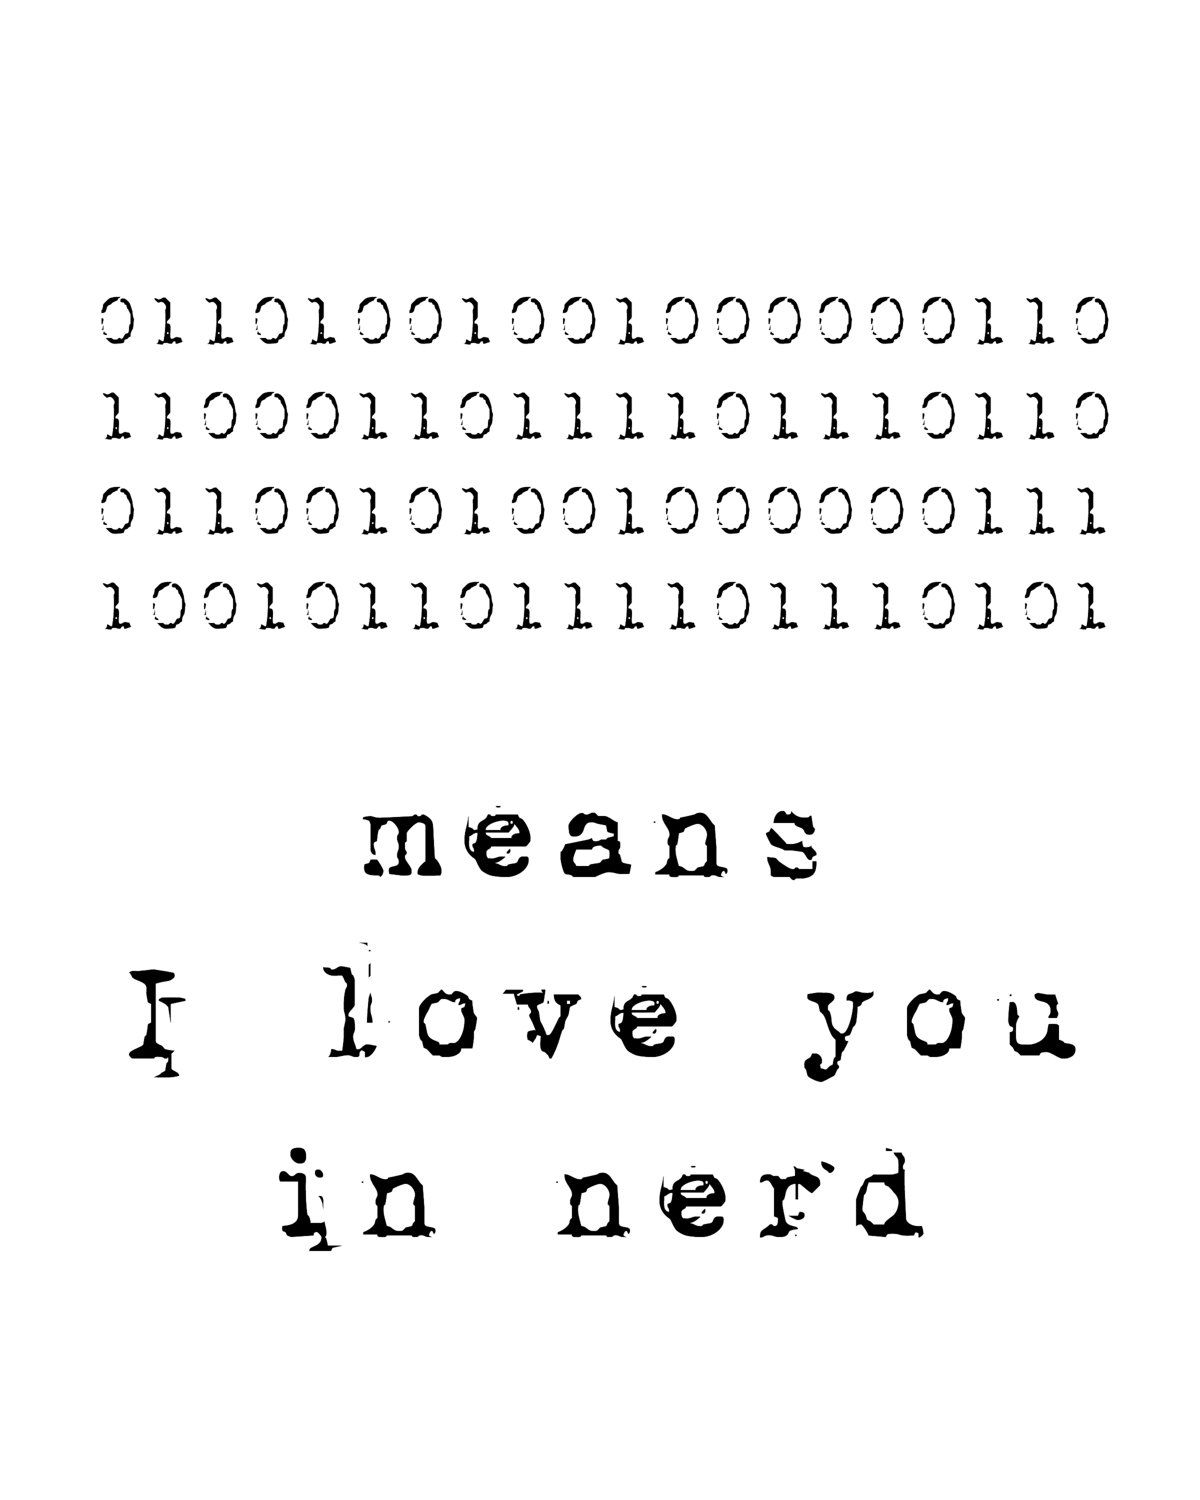 Binary Quotes : binary, quotes, Means, Nerd., Binary, Code., Computer, Language., Love., Print.., .00,, Etsy., Quotes,, Coding